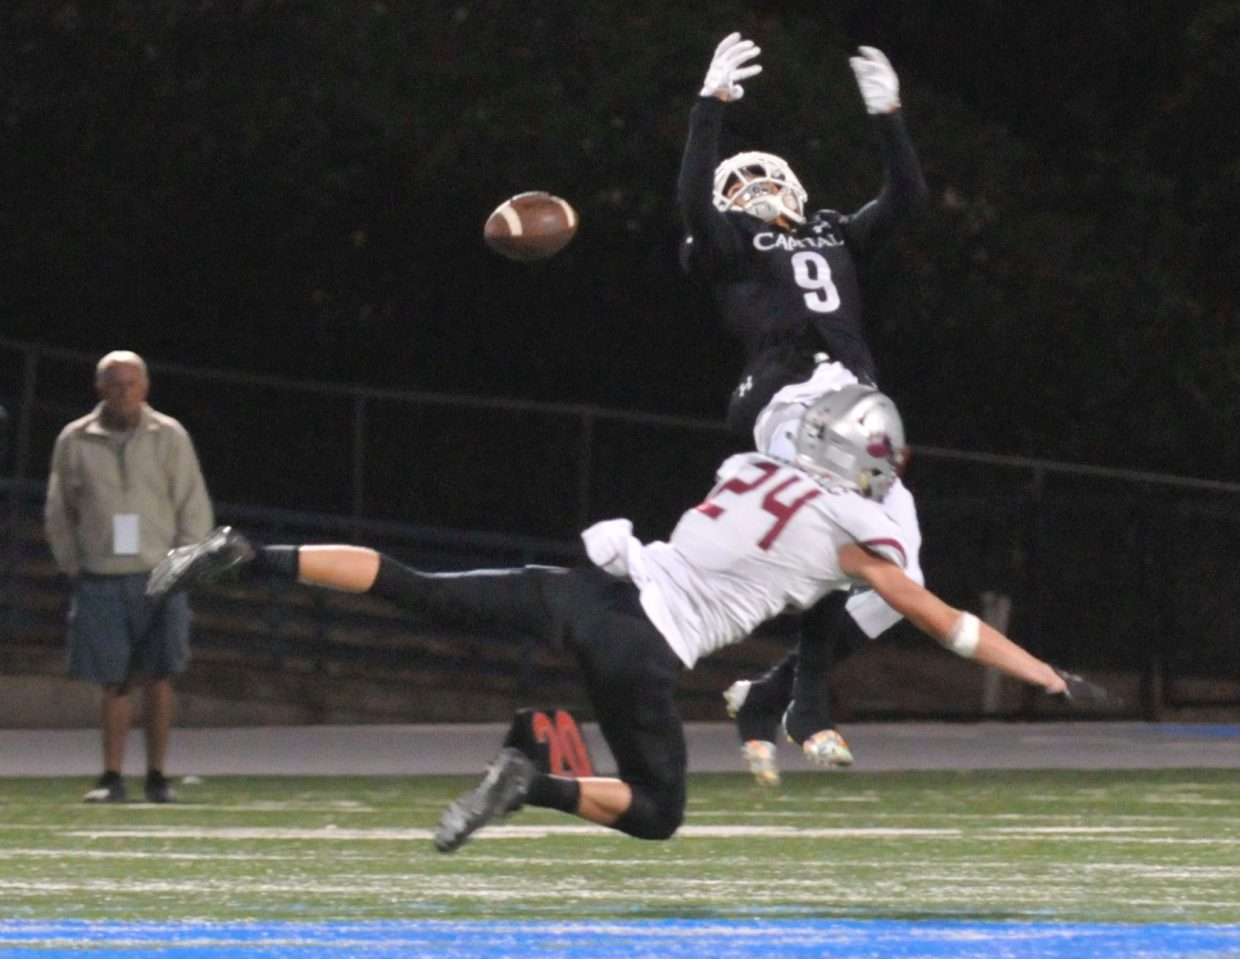 Bear River's Tre Maronic (24) flys through the air to break up a Capital Christian pass intended for Ishmael Rehberg.